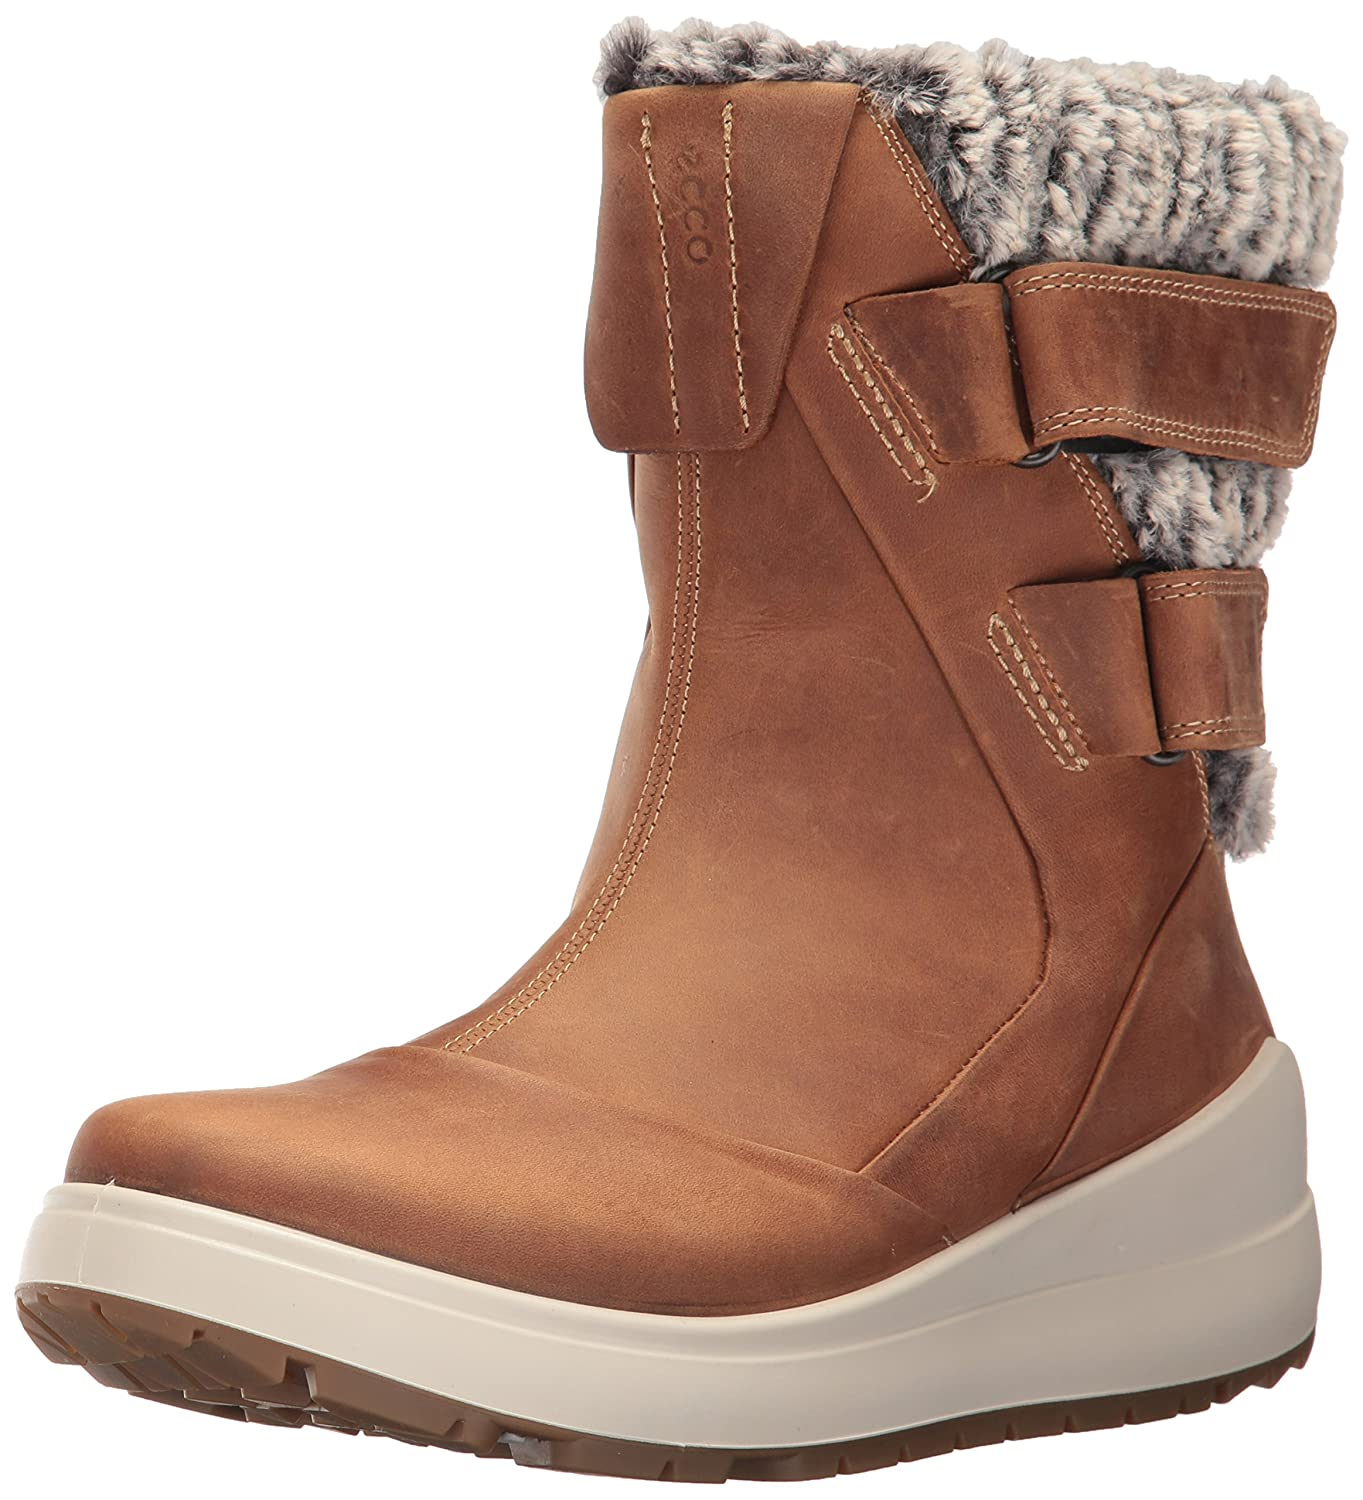 ECCO Shoes Women\'s Noyce Mid Snow Boots 834613